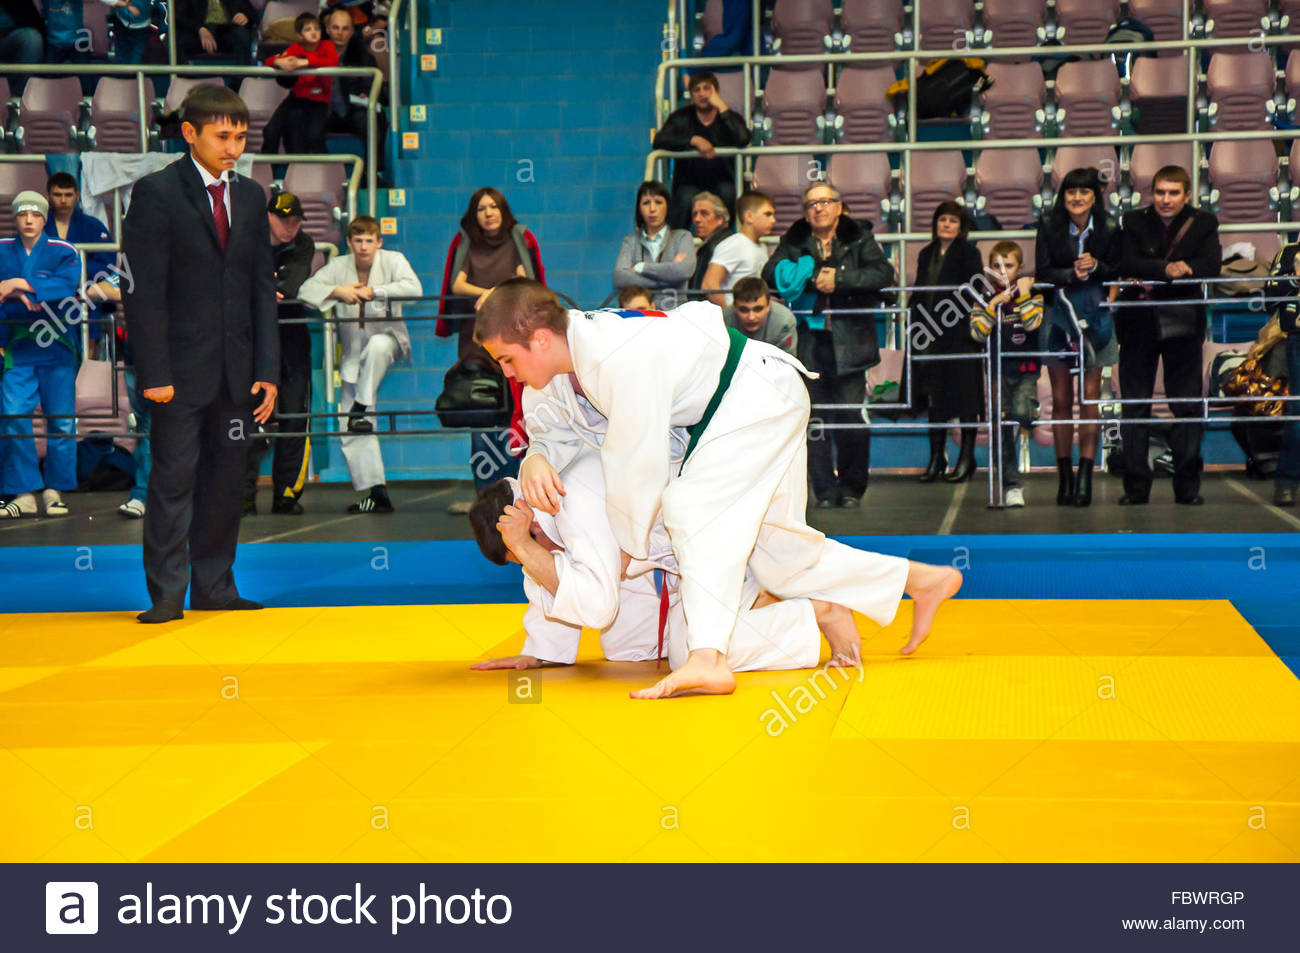 Judo competitions among adolescents - Stock Image